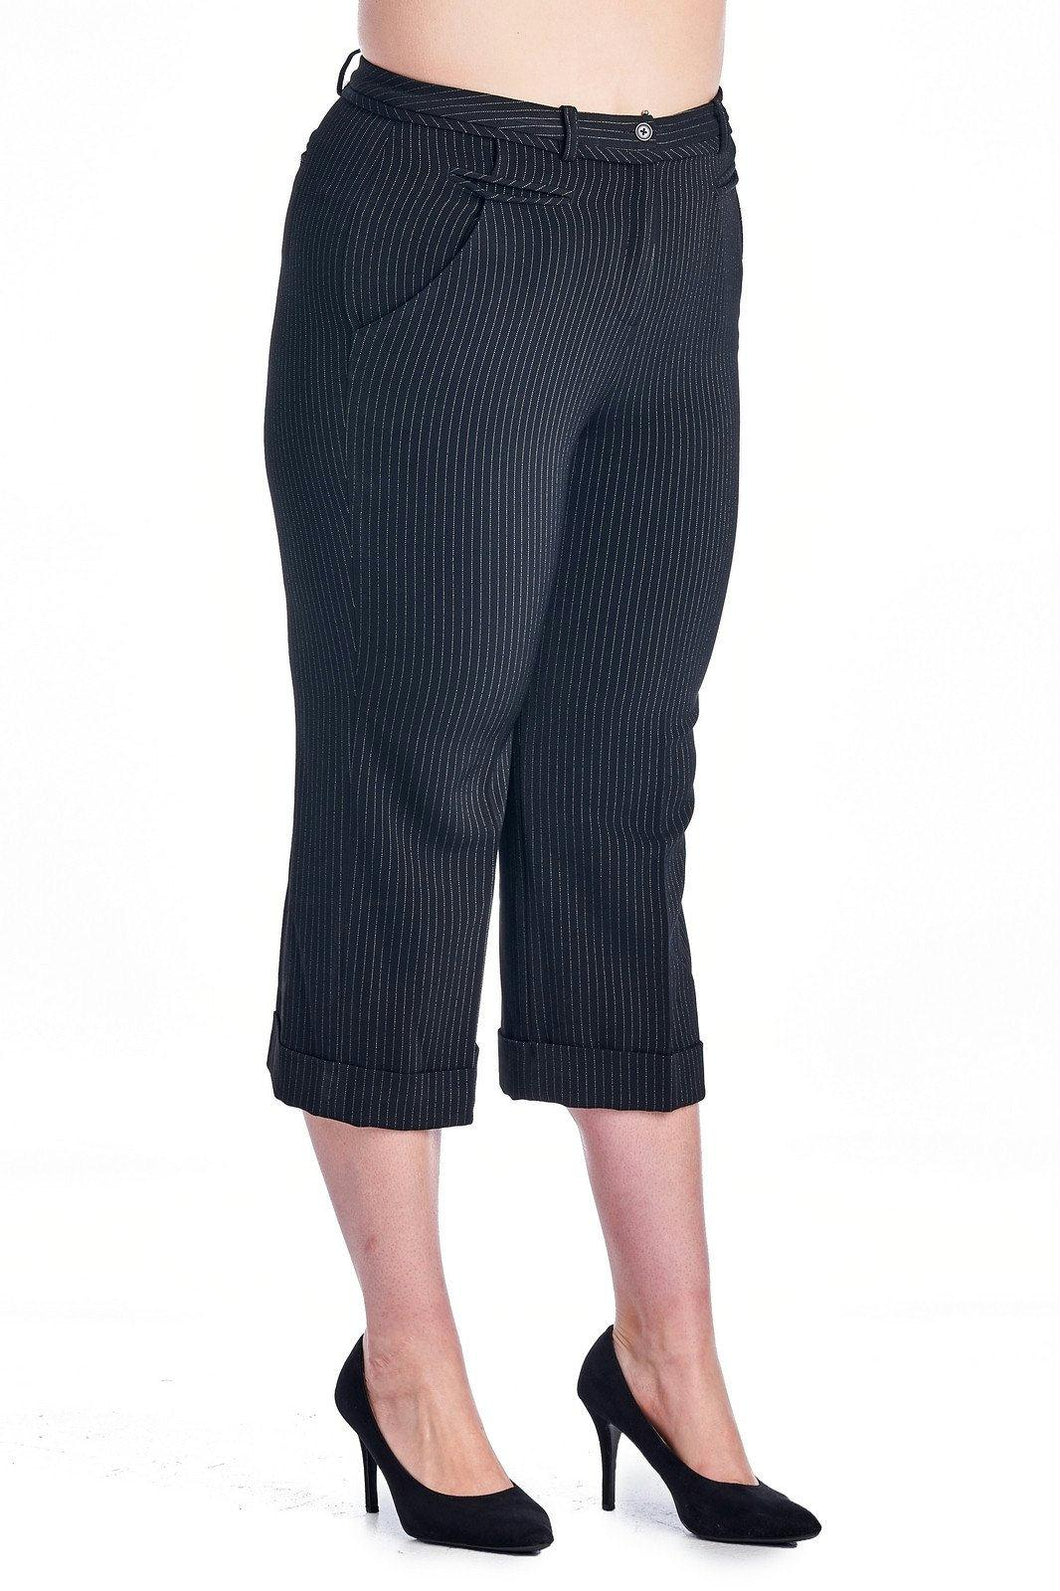 Women's Stretch Capris